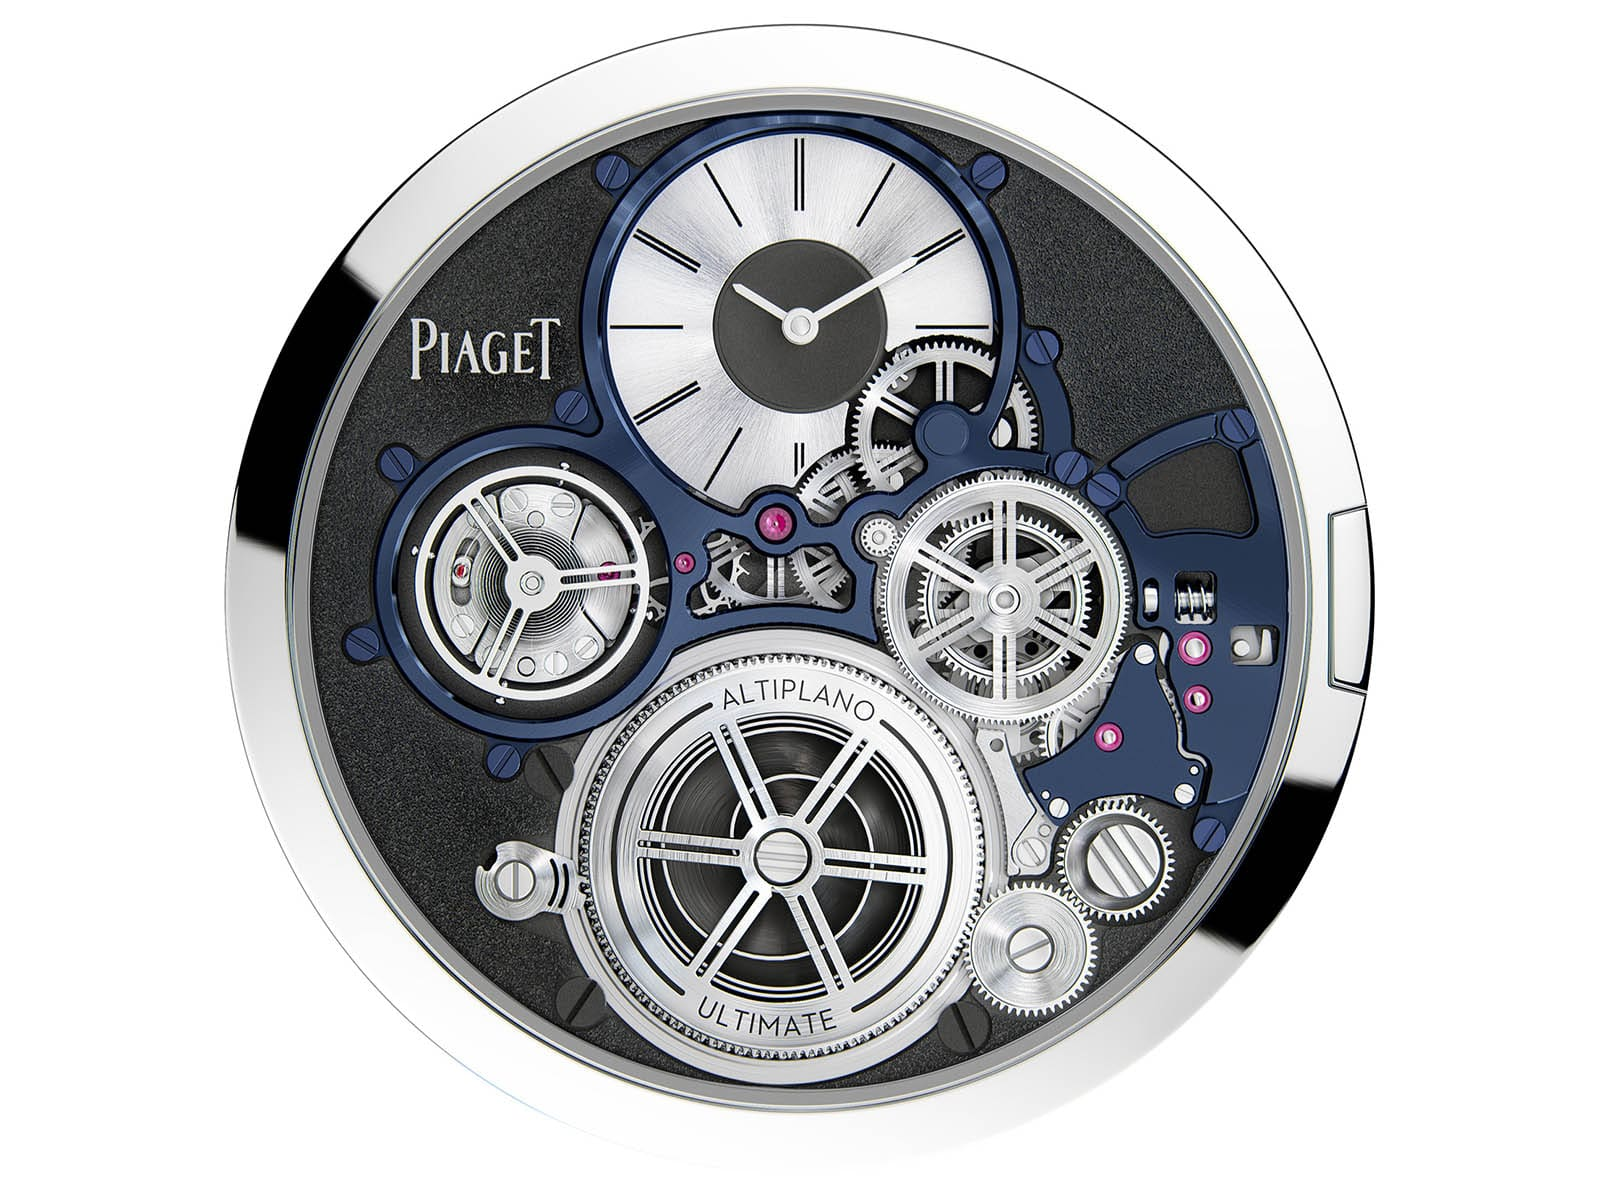 piaget-altiplano-ultimate-concept-watches-wonders-2020-4.jpg